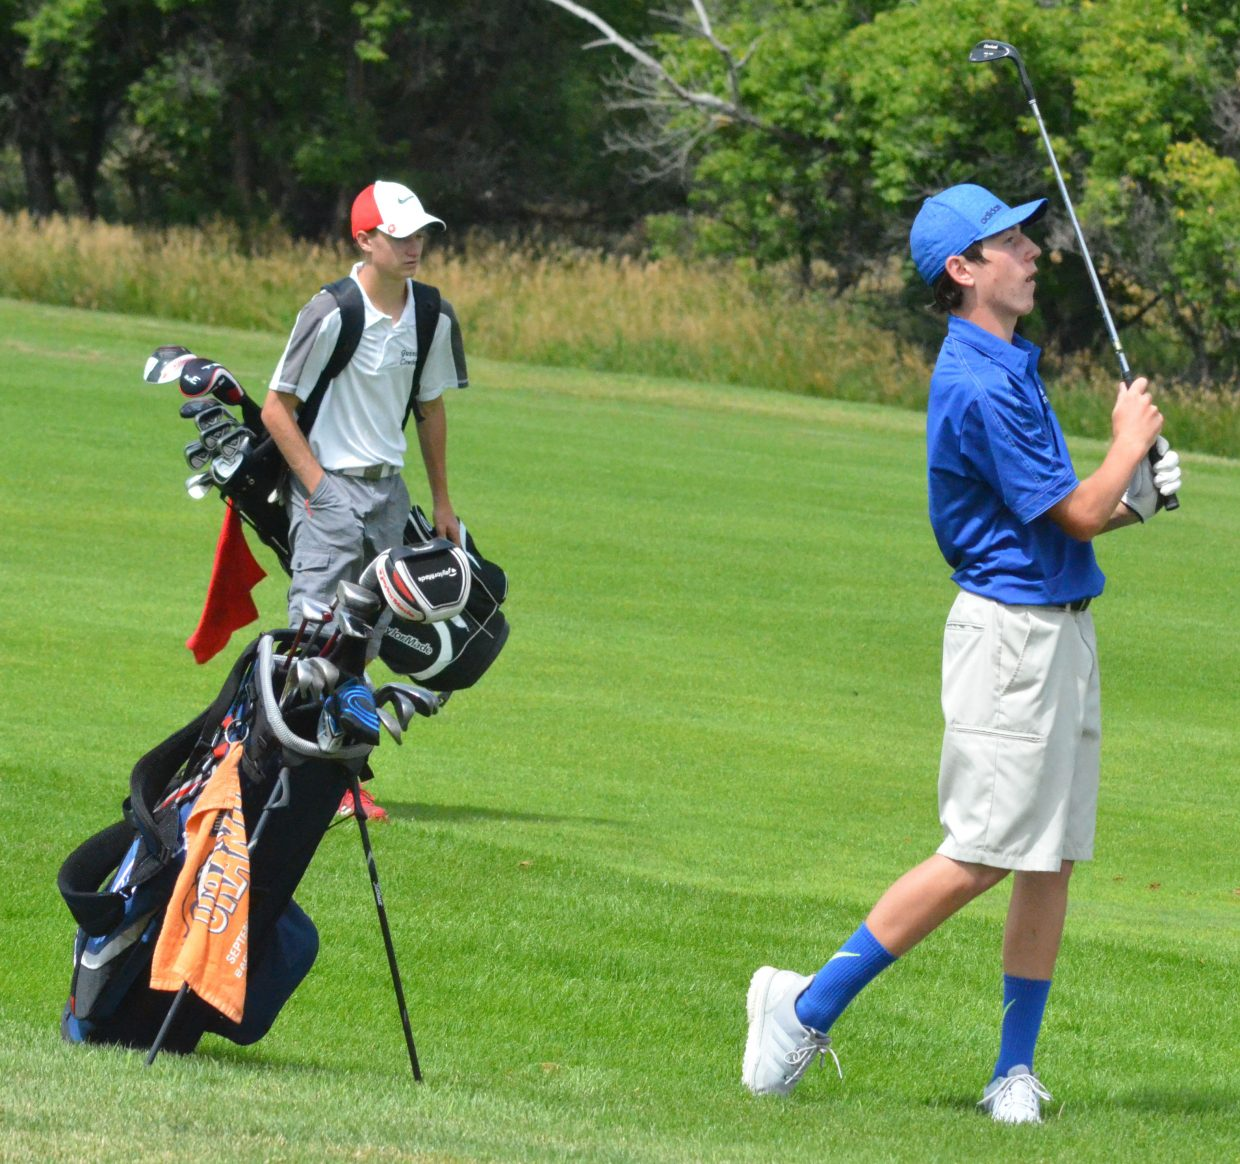 Moffat County High School sophomore Connor Etzler chips from the 17th fairway of Yampa Valley Golf Course Monday during the MCHS Invitational. Etzler shot a 91 for the day.